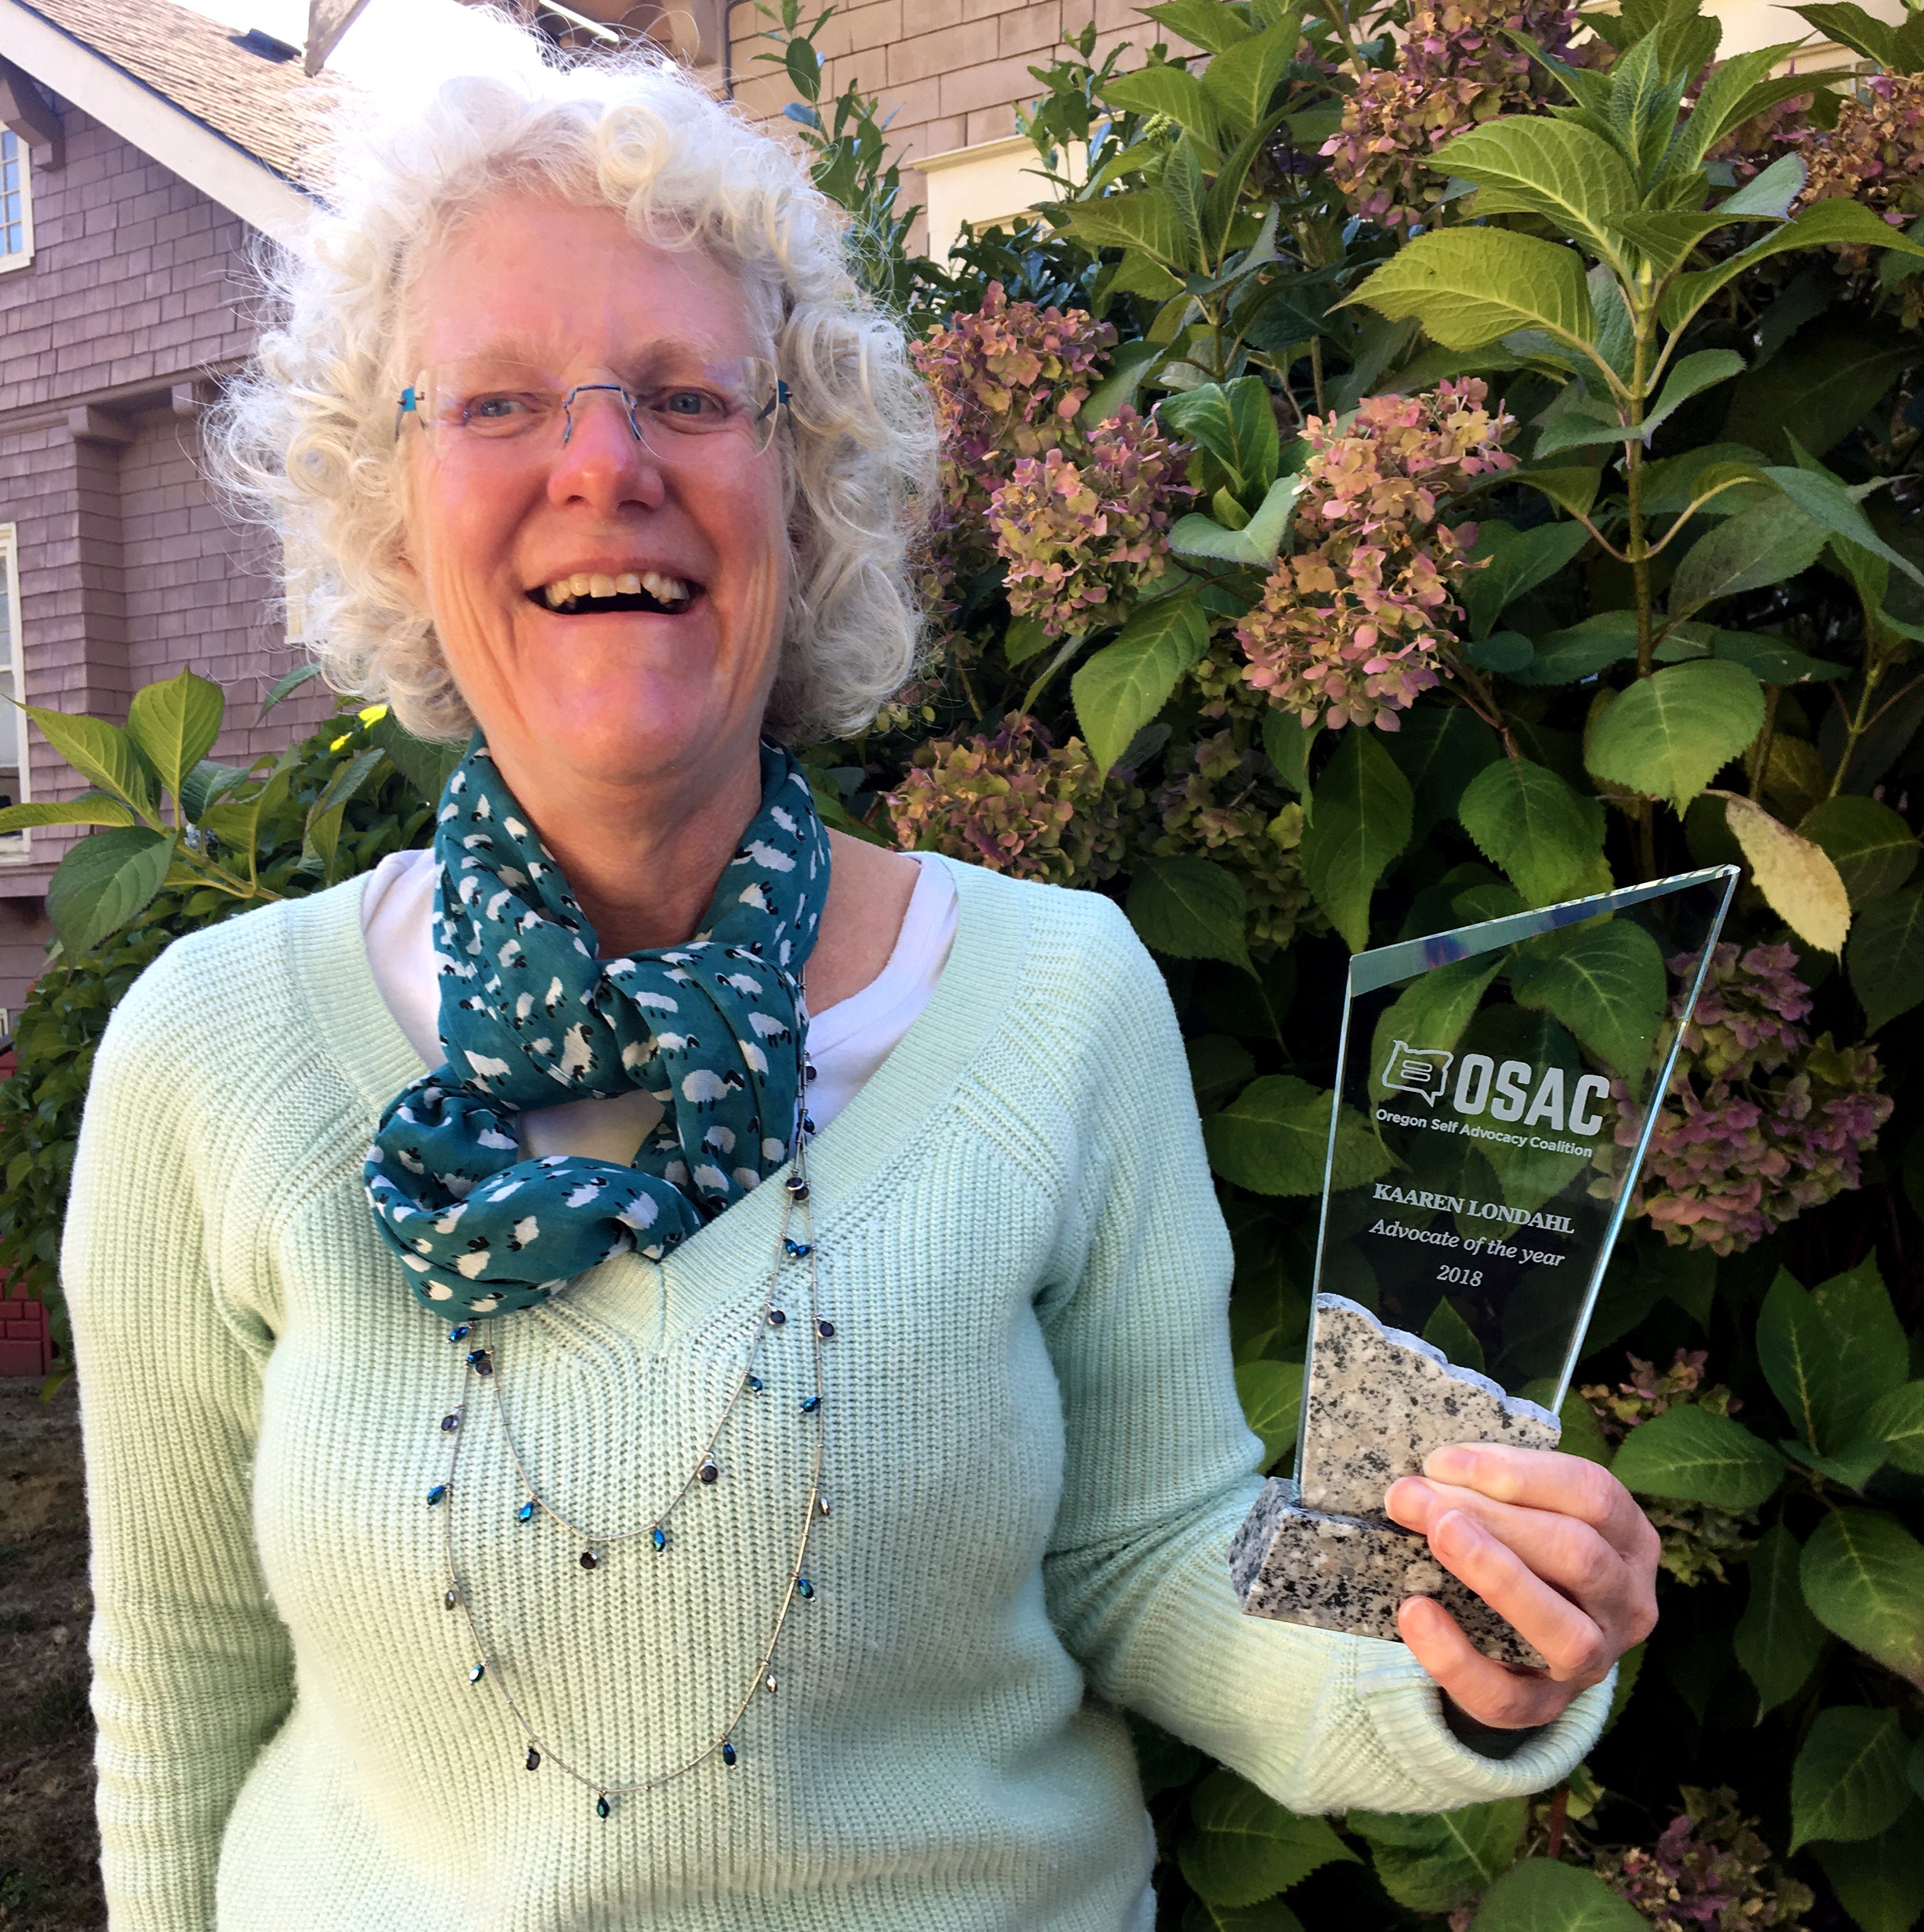 White haired woman with glasses standing in front of a bush holding a clear glass award